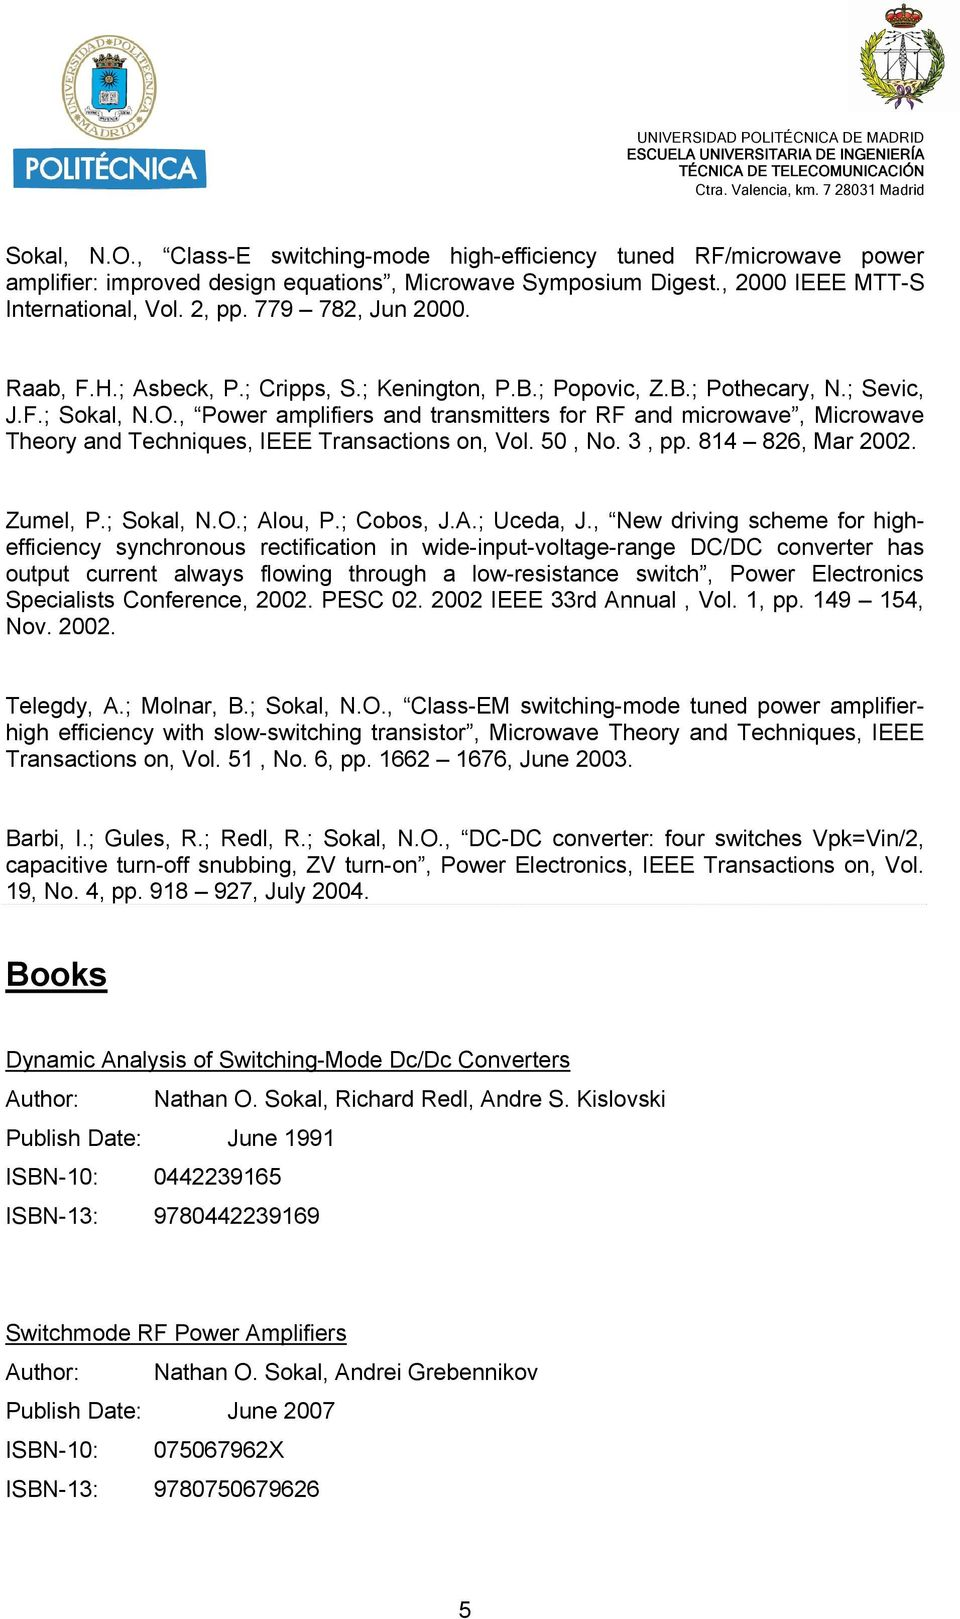 , Power amplifiers and transmitters for RF and microwave, Microwave Theory and Techniques, IEEE Transactions on, Vol. 50, No. 3, pp. 814 826, Mar 2002. Zumel, P.; Sokal, N.O.; Alou, P.; Cobos, J.A.; Uceda, J.